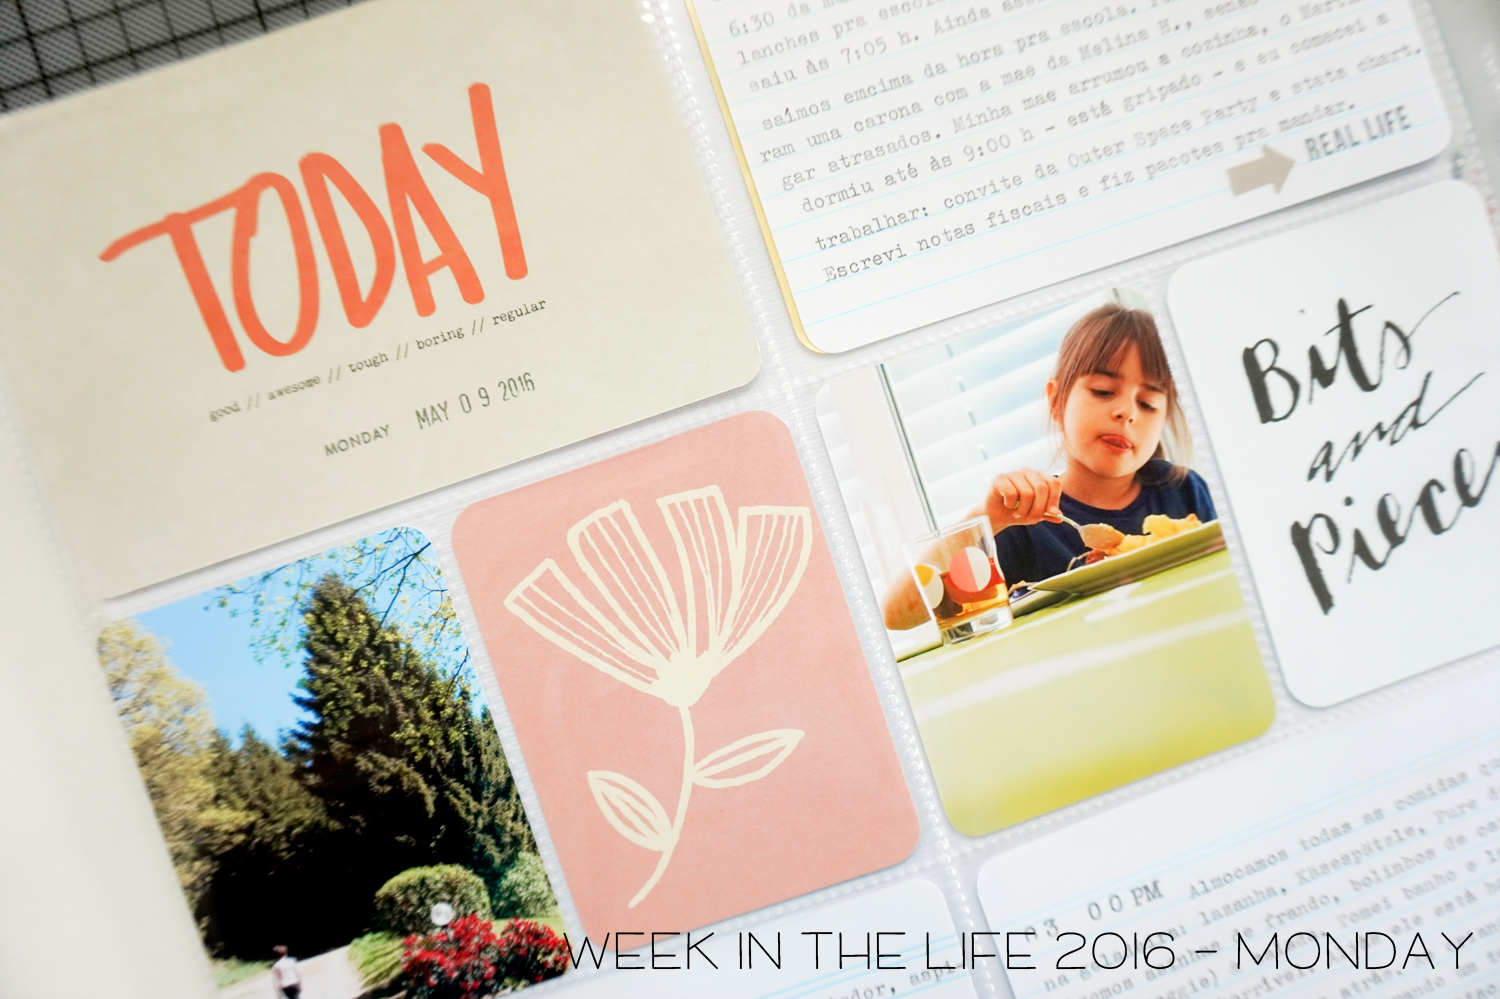 week in the life 2016 - Monday